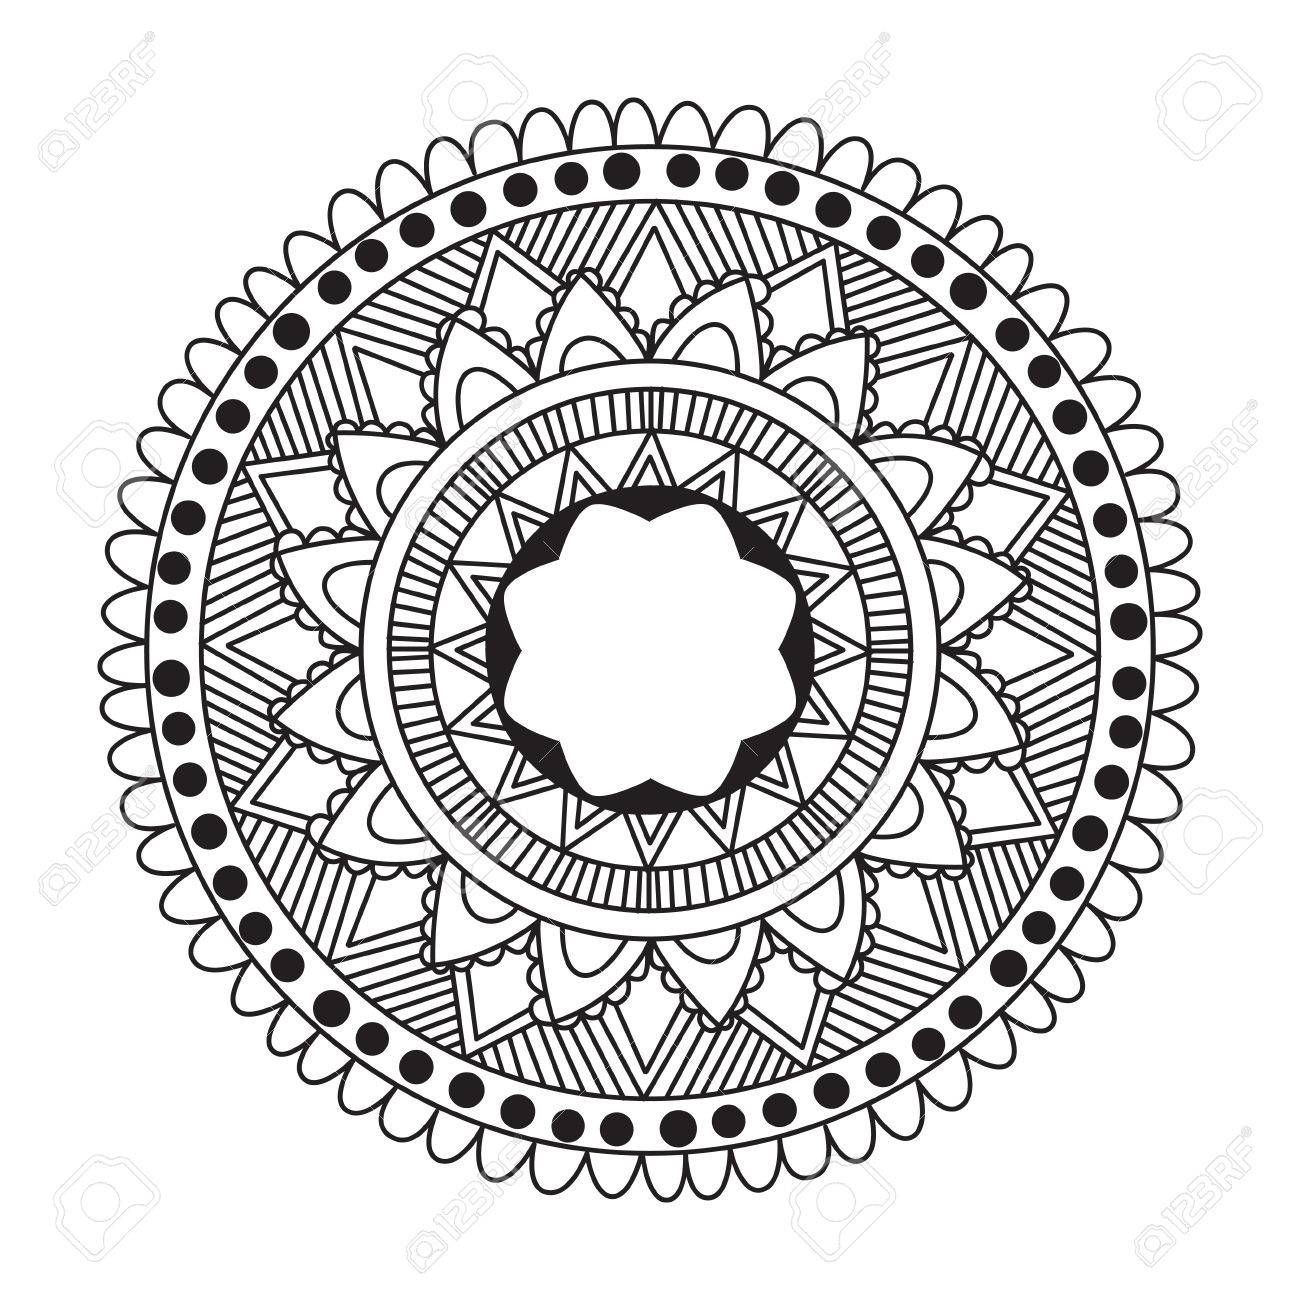 a zentangle mandala for coloring book and adults made by trace from personal hand drawn - Coloring Book Mandala